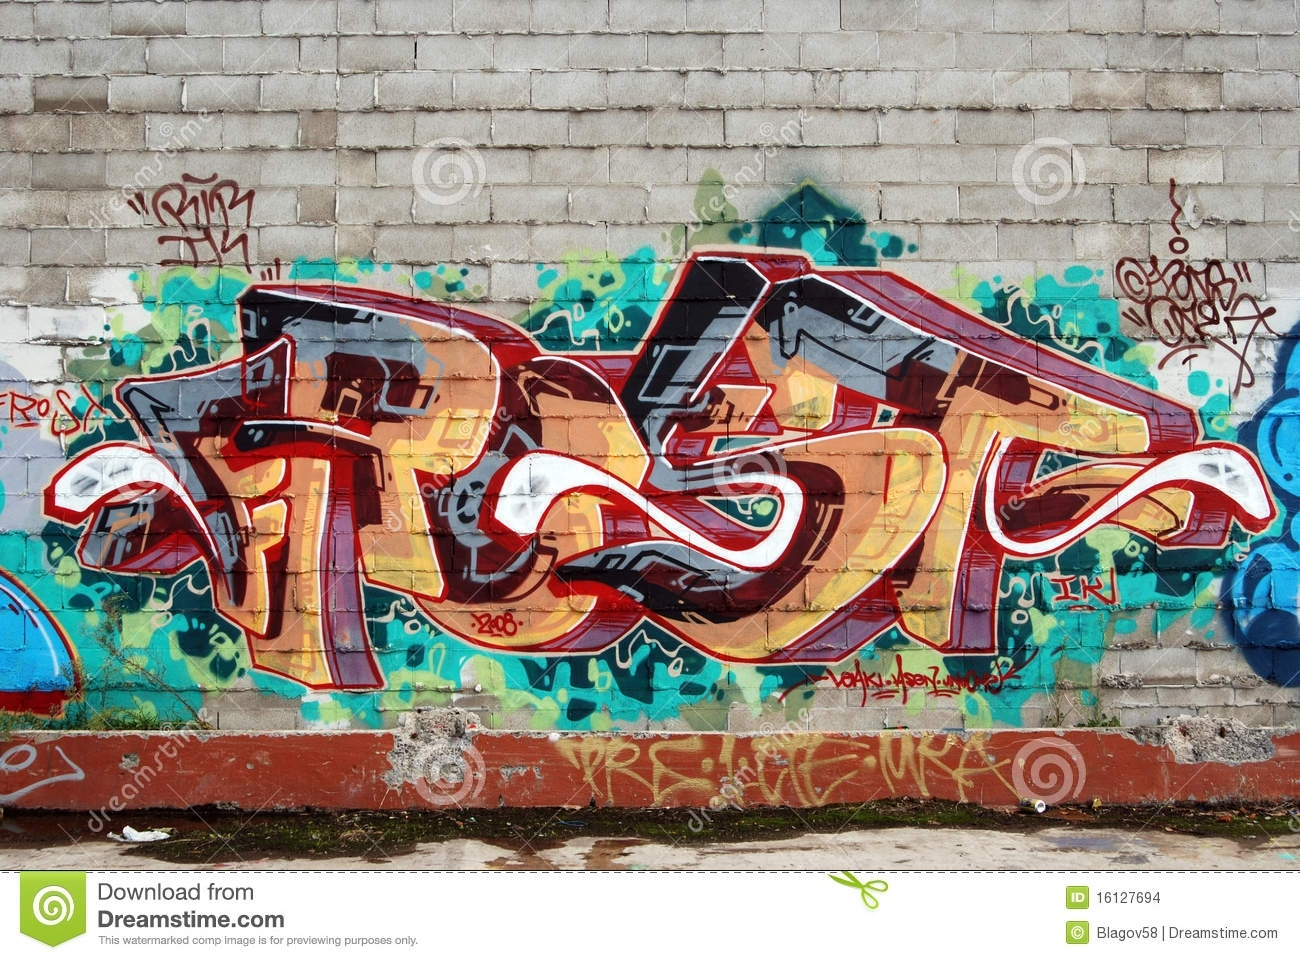 A Wall Vandalized With Street Graffiti Art Stock Photo – Image Of Throughout Latest Abstract Graffiti Wall Art (View 3 of 20)